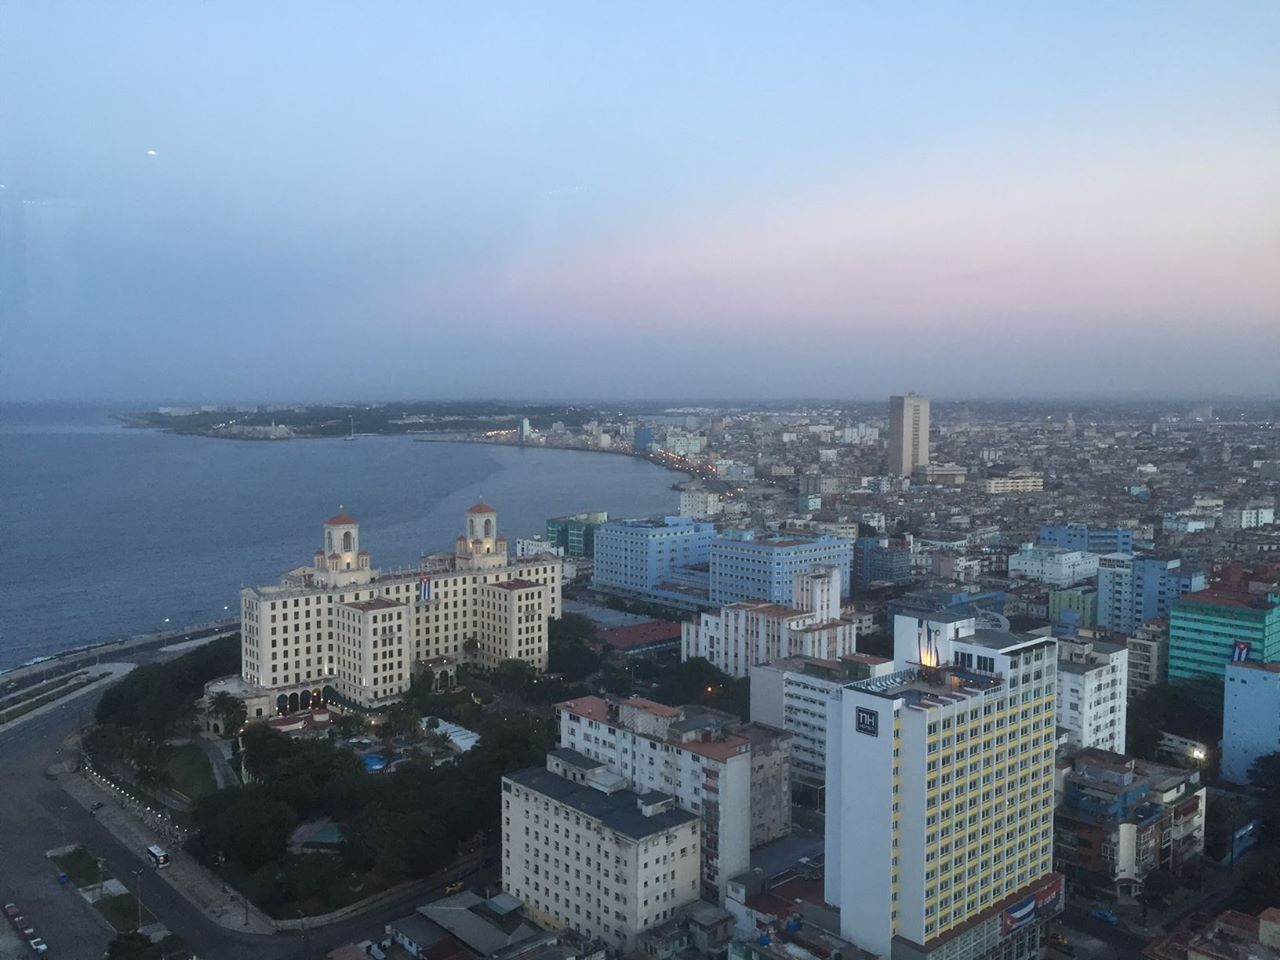 A view of Havana's skyline and coast.